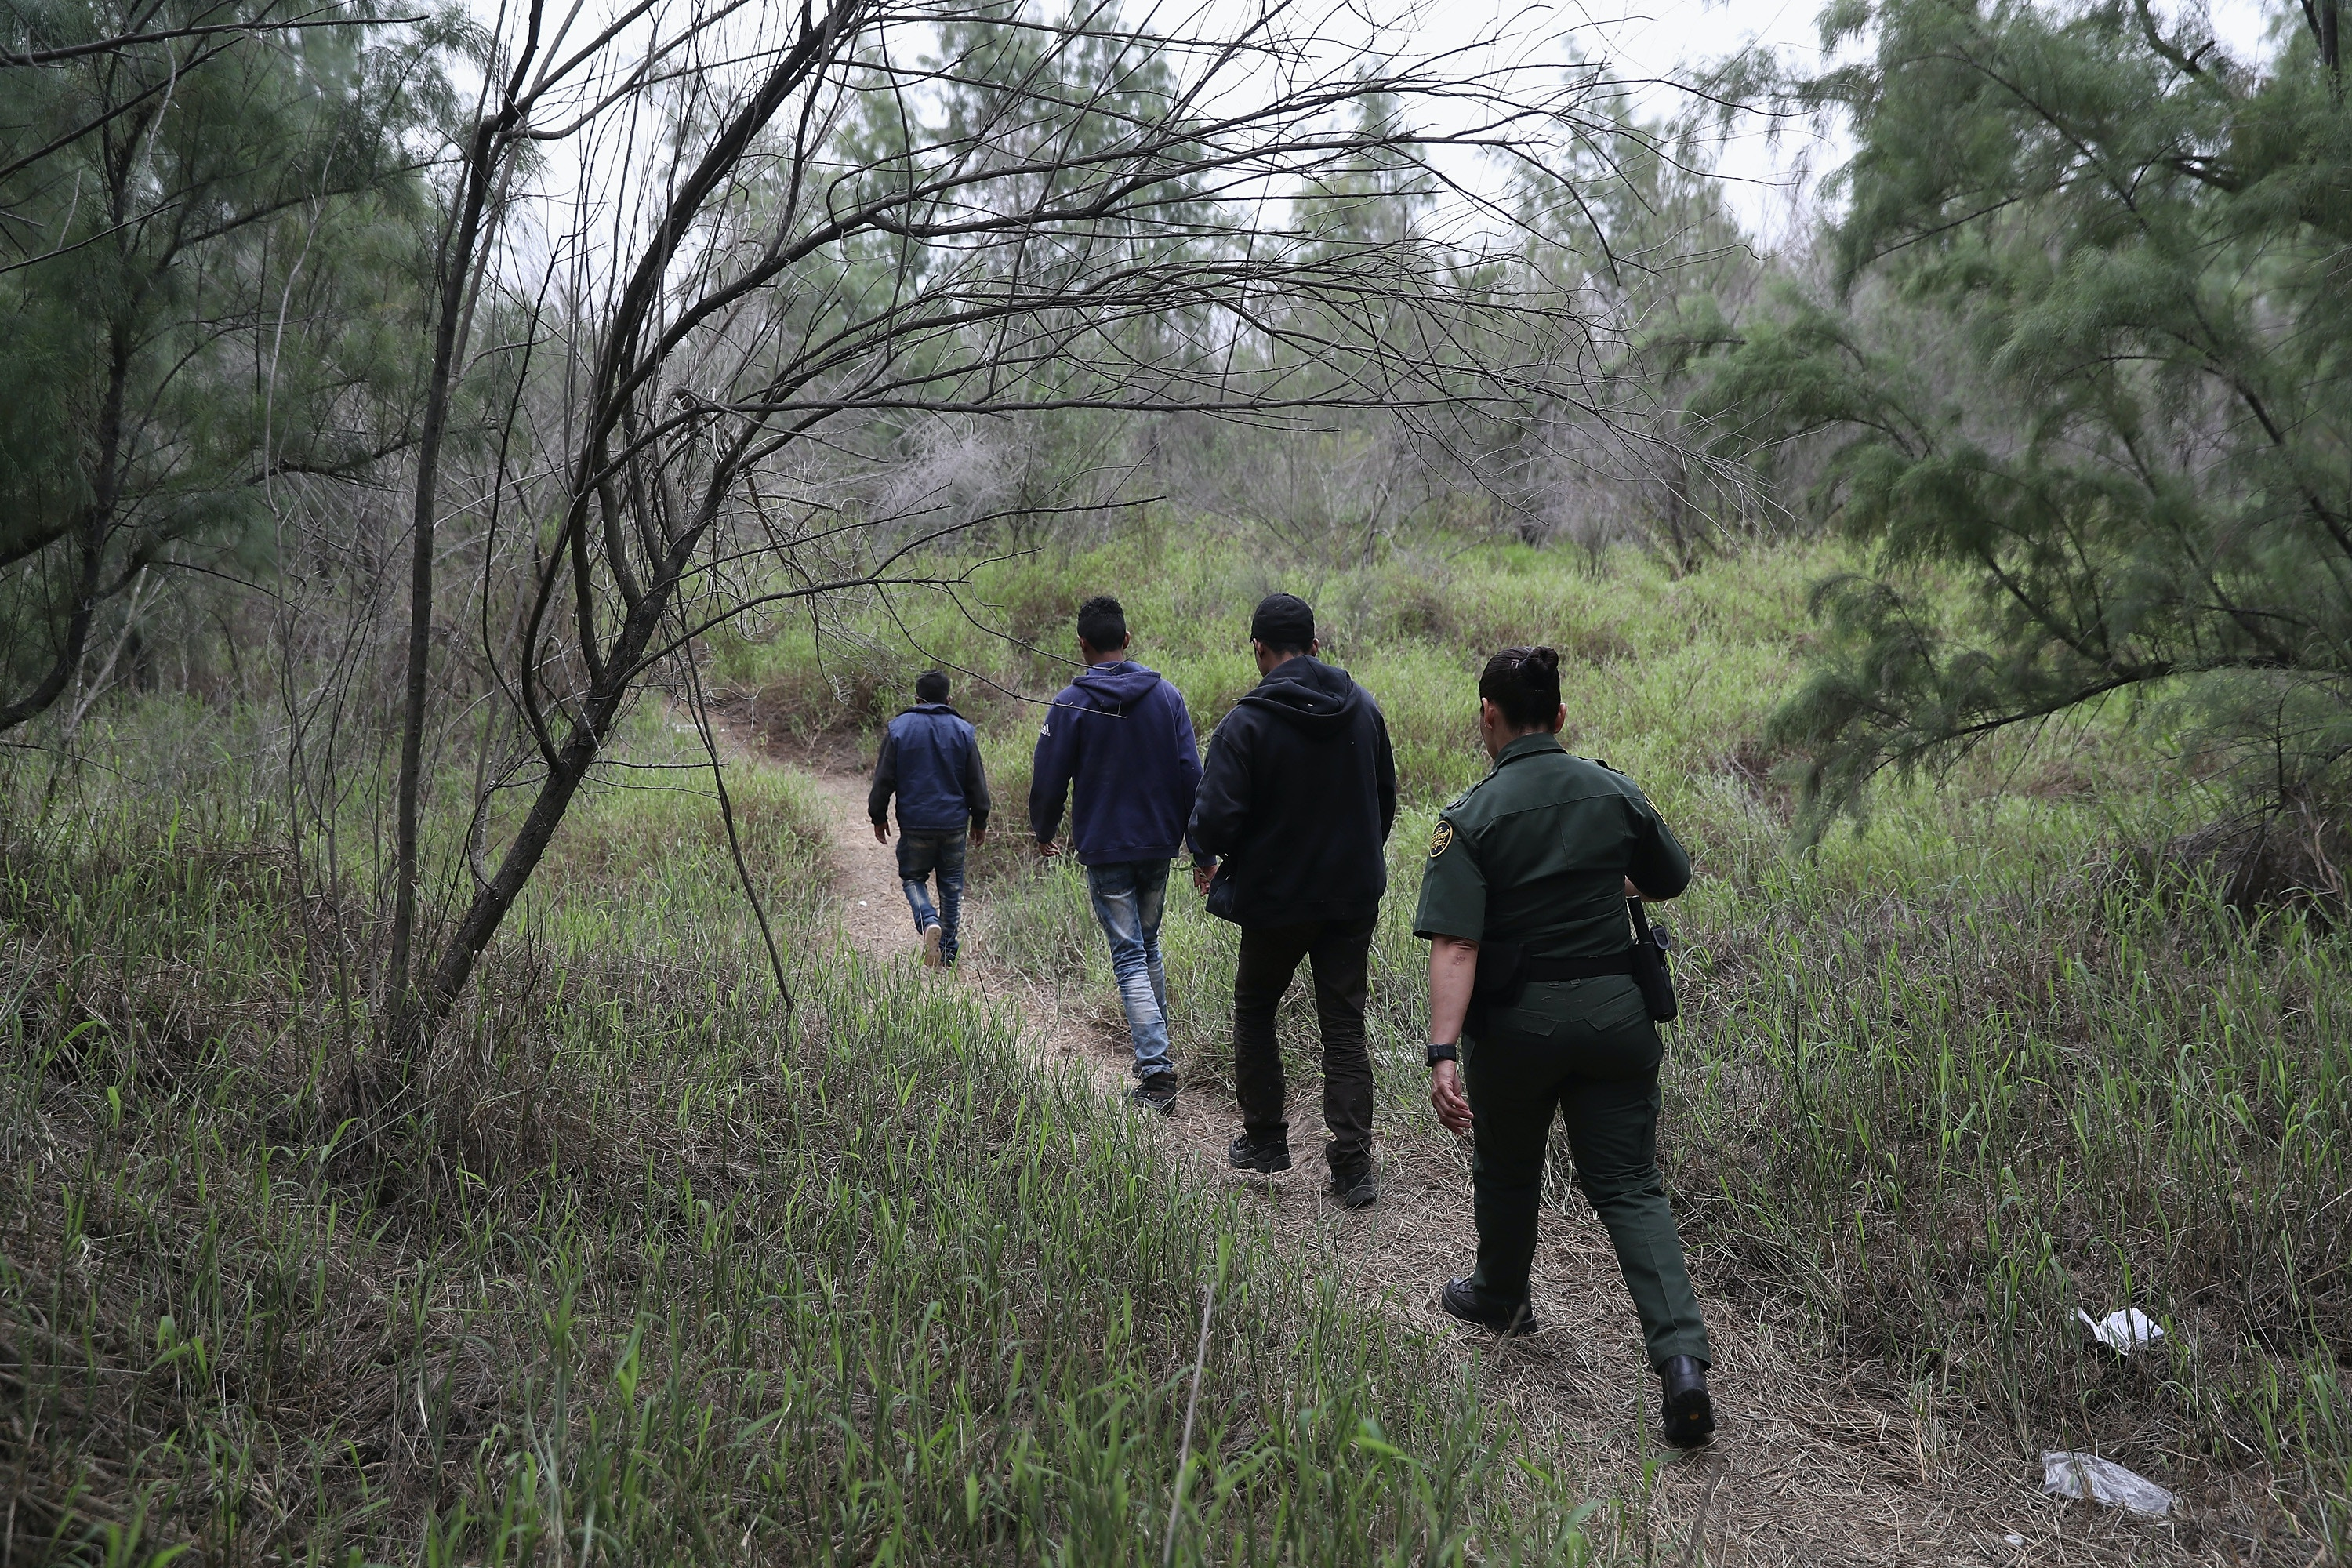 Border Humanitarian Group Charged for Aiding Migrants